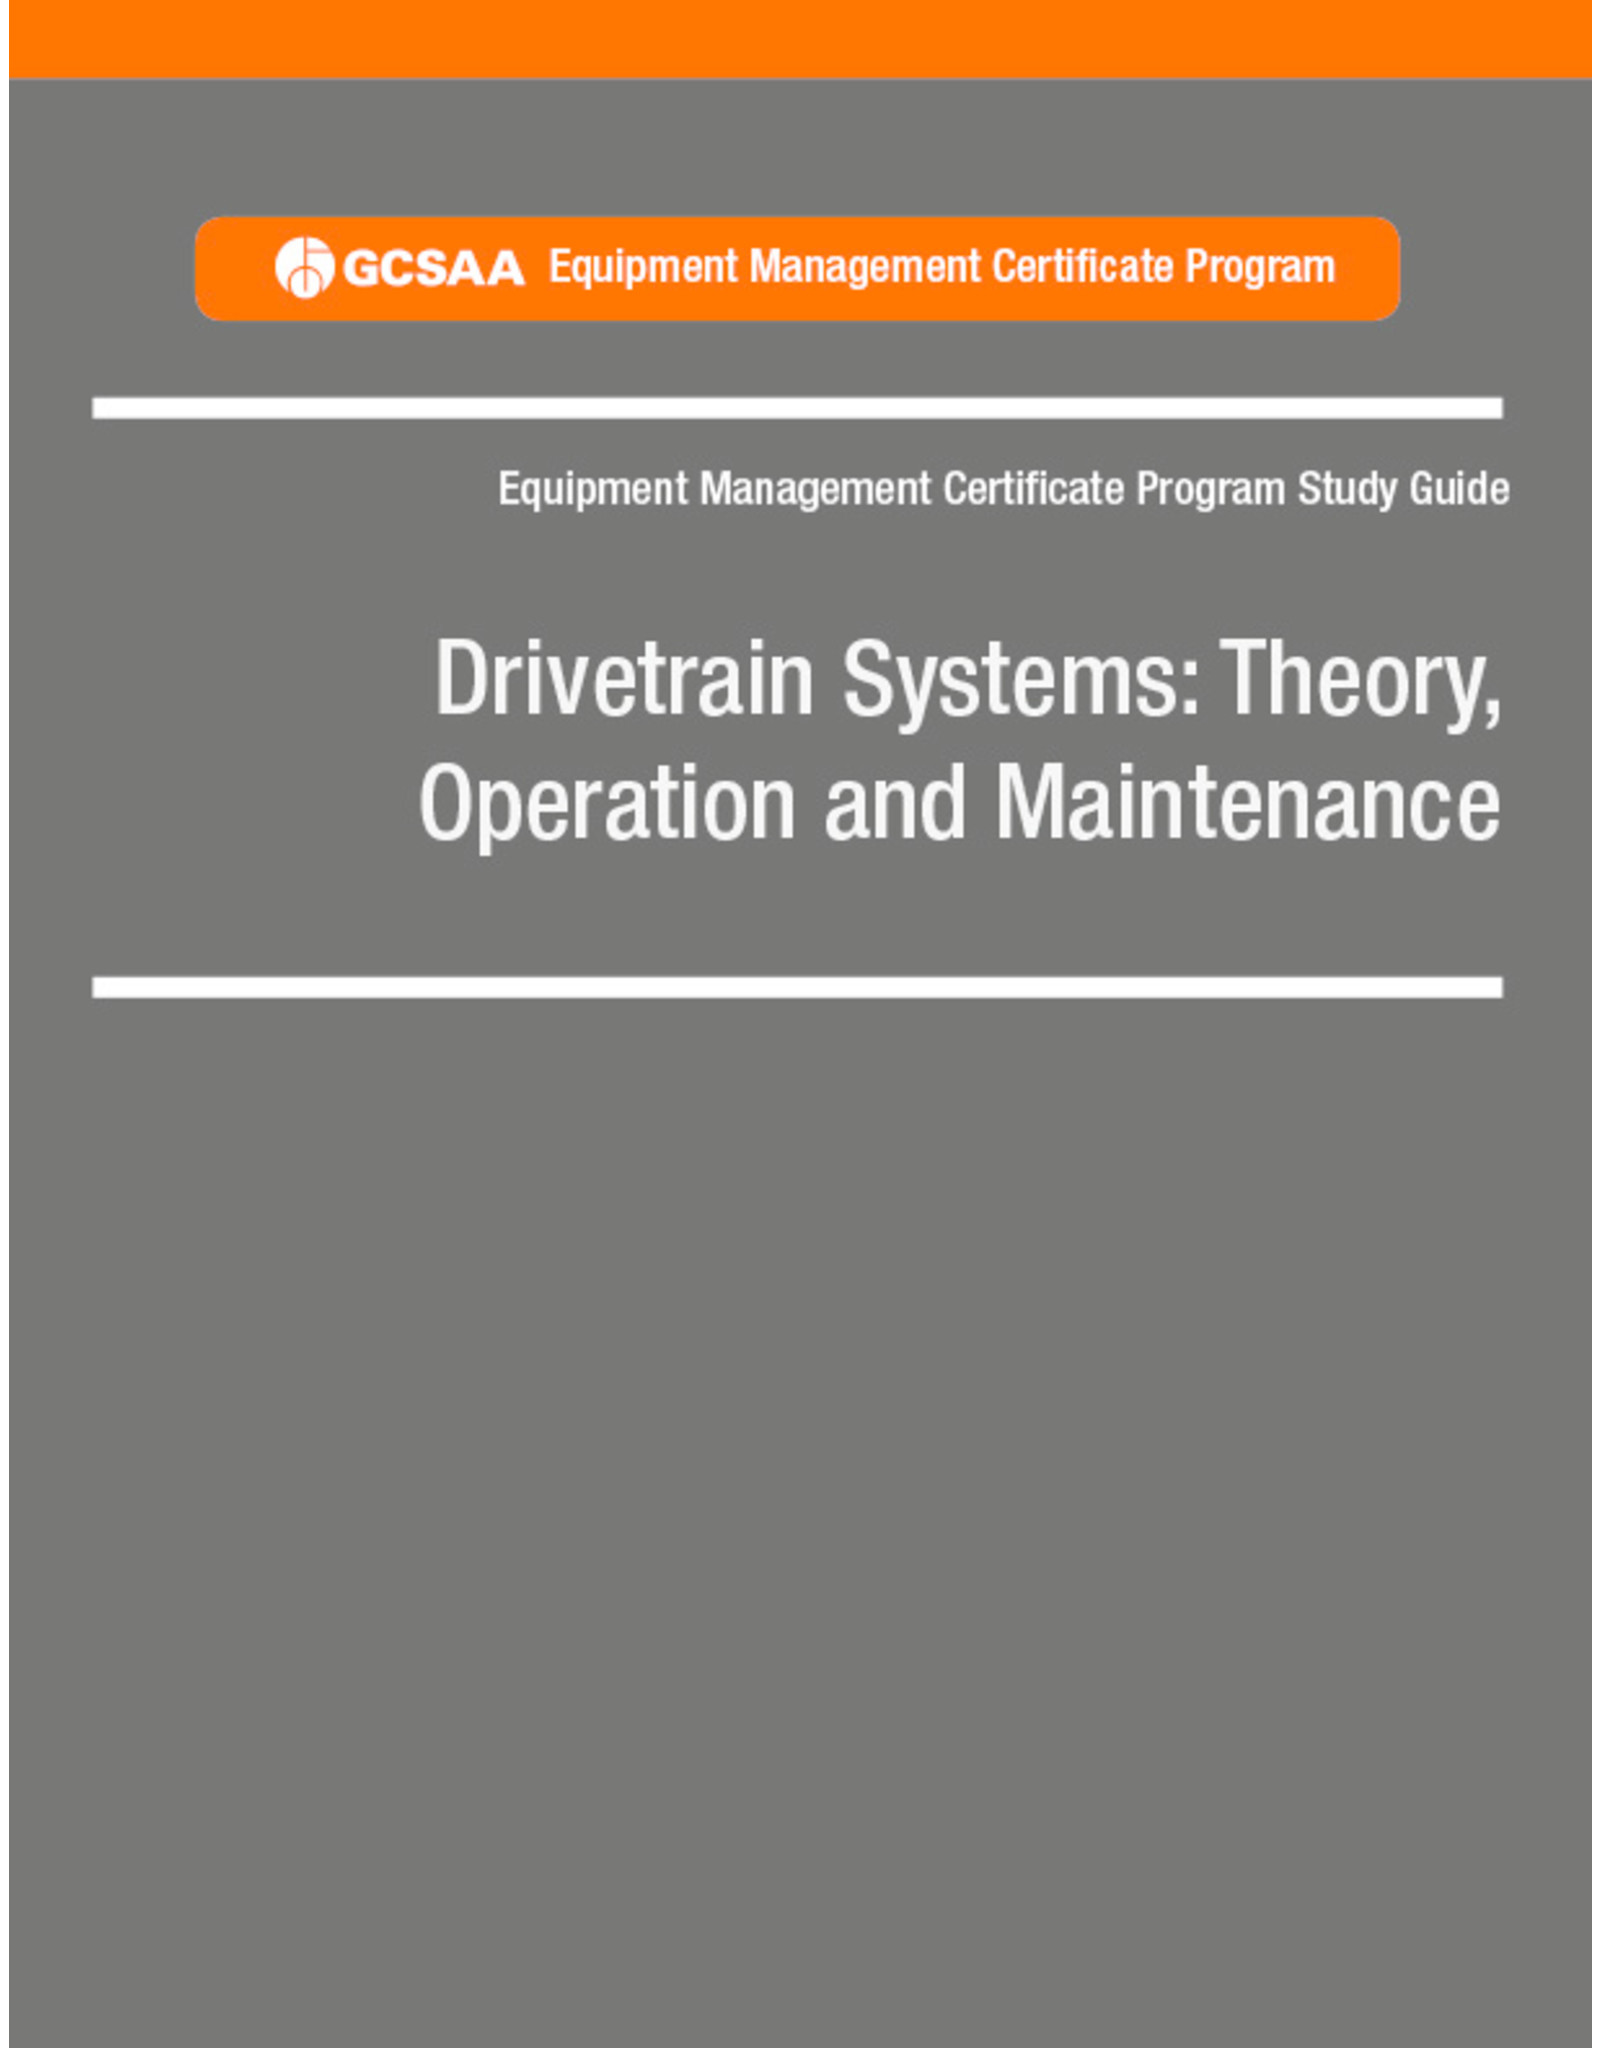 Drivetrain Systems: Theory, Operation and Maintenance